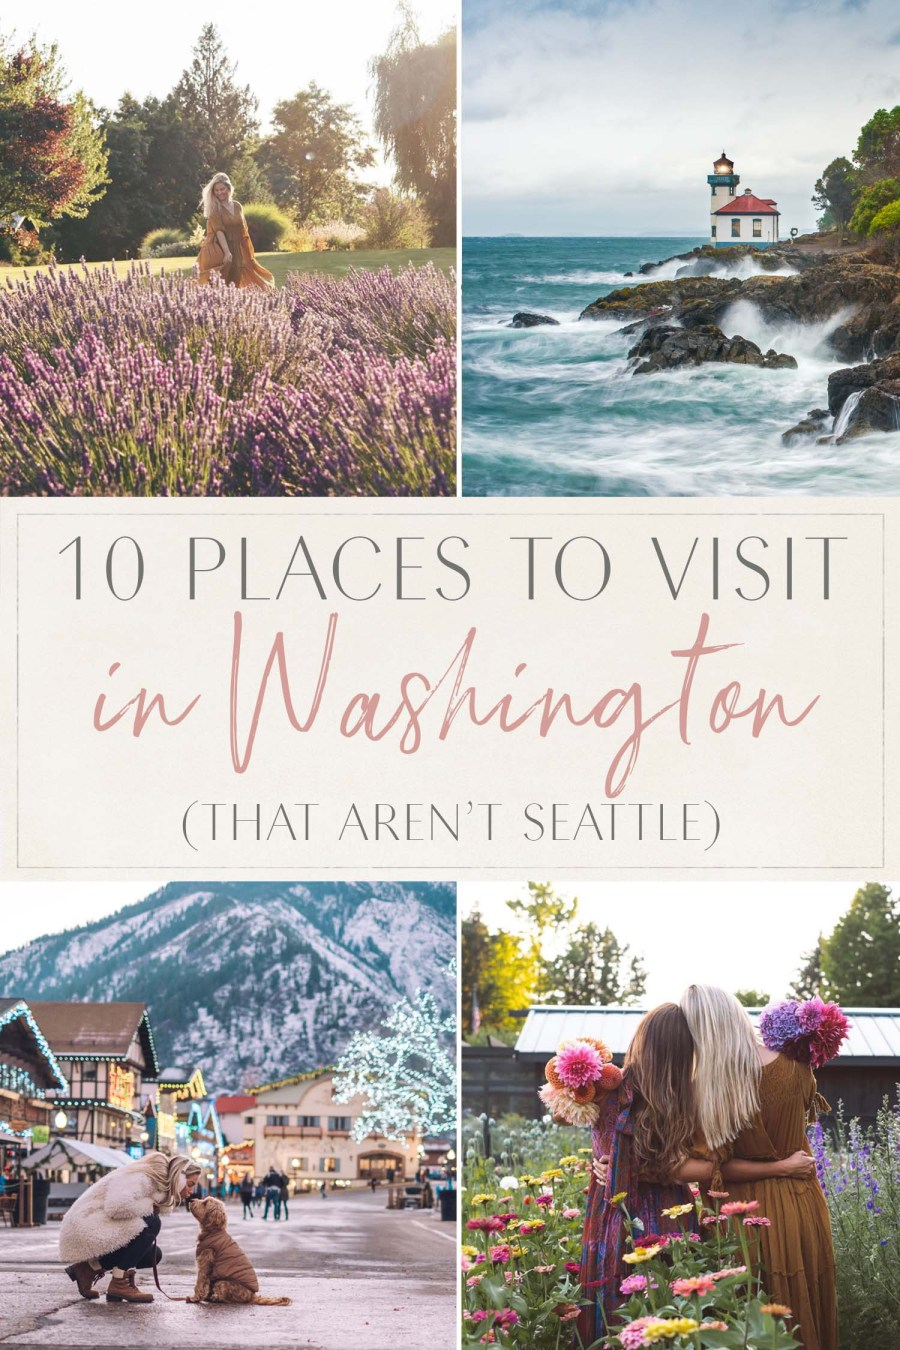 10 Places to Visit in Washington Not Seattle